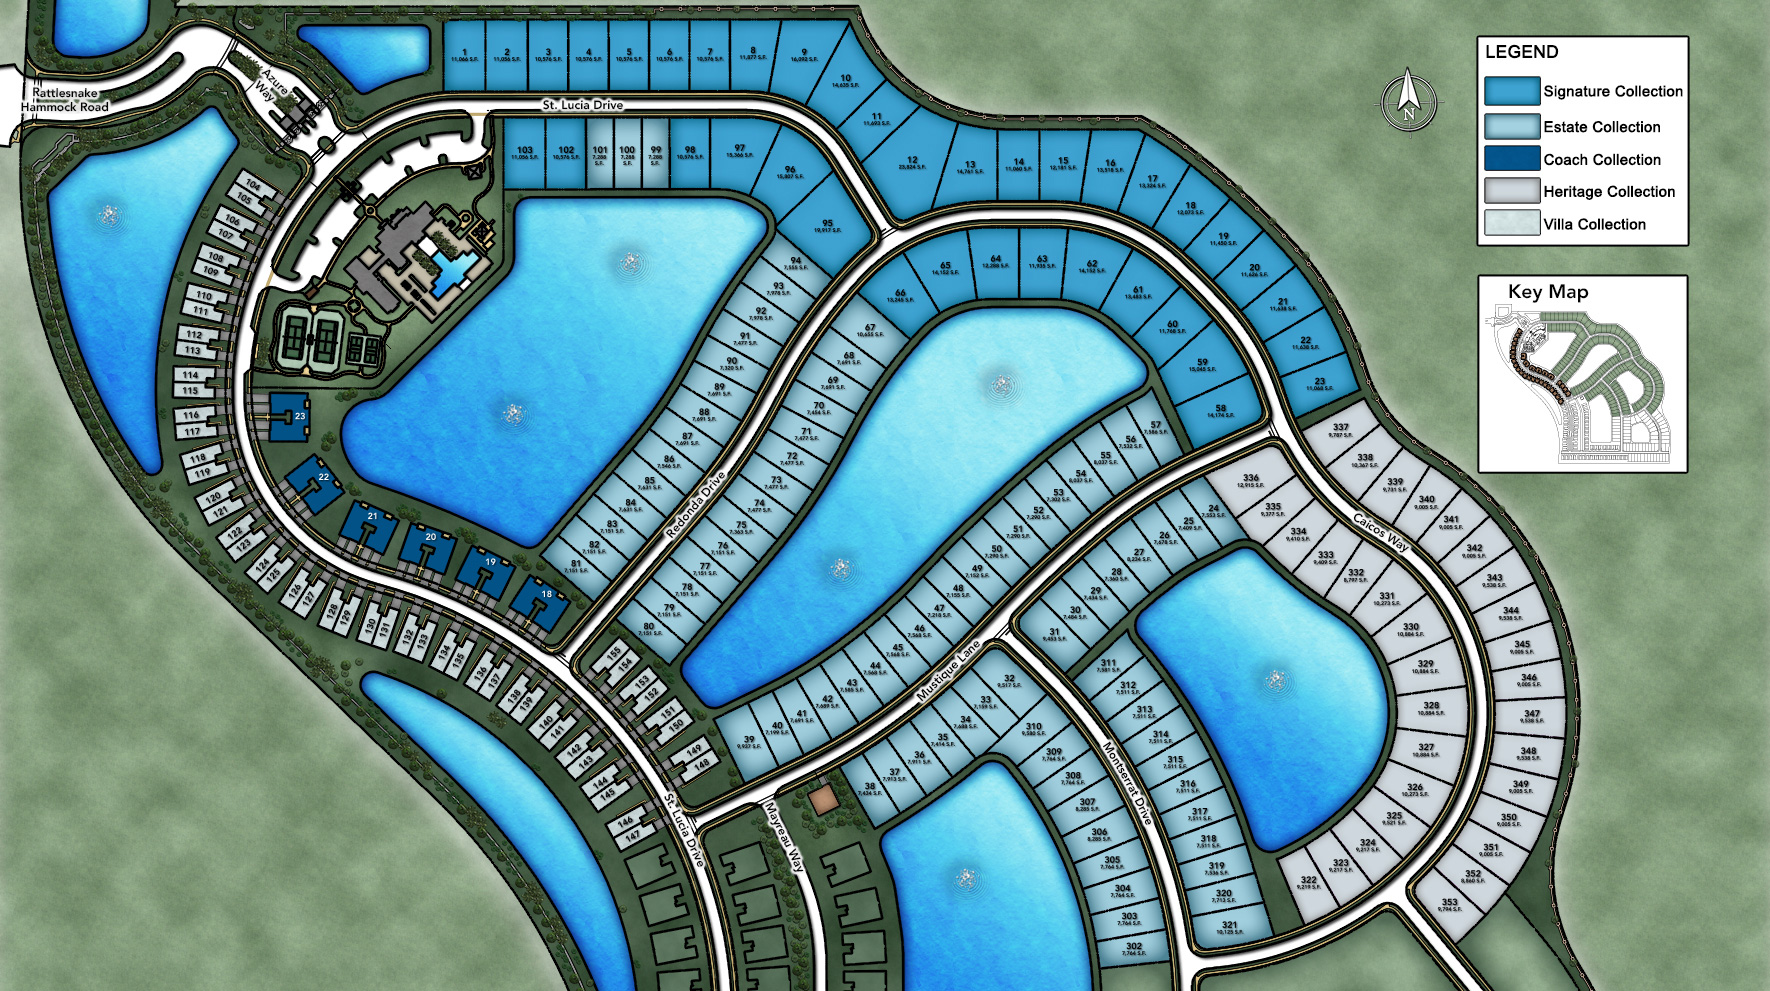 Azure at Hacienda Lakes - Estate Collection Site Plan I